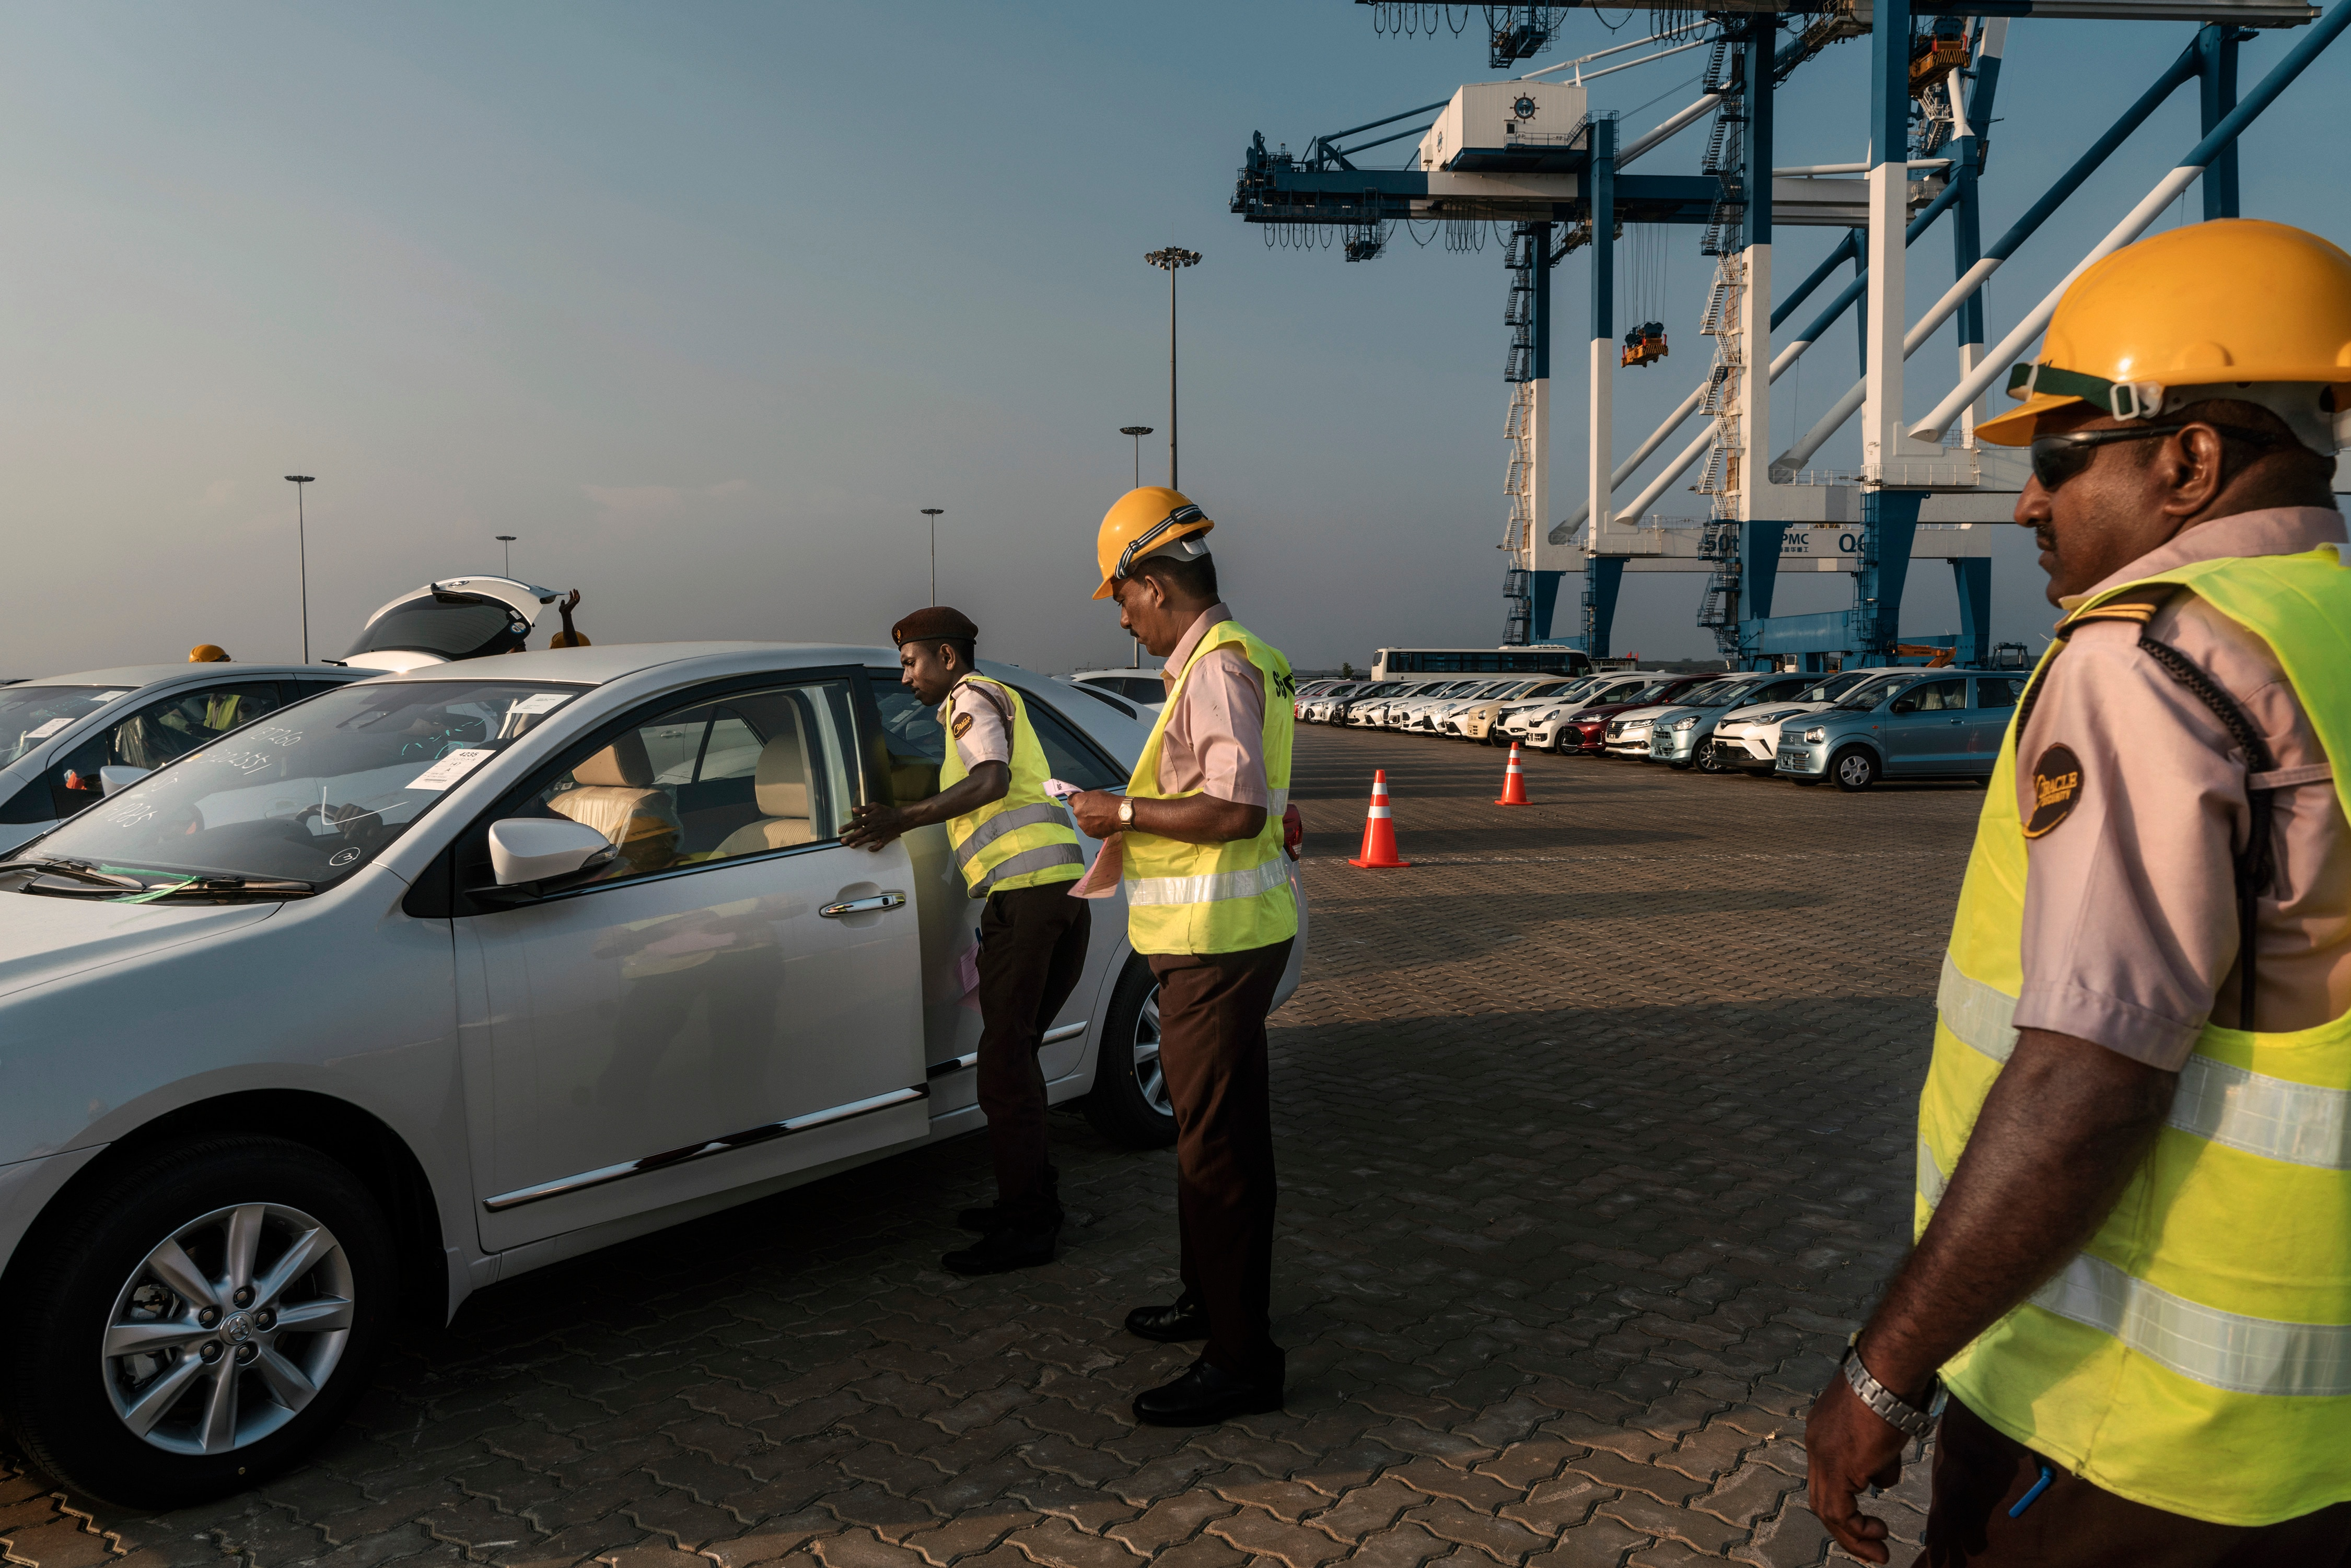 Sri Lankan workers process cars being unloaded from a ship at the Hambantota Port in Hambantota, Sri Lanka, March 5, 2018.